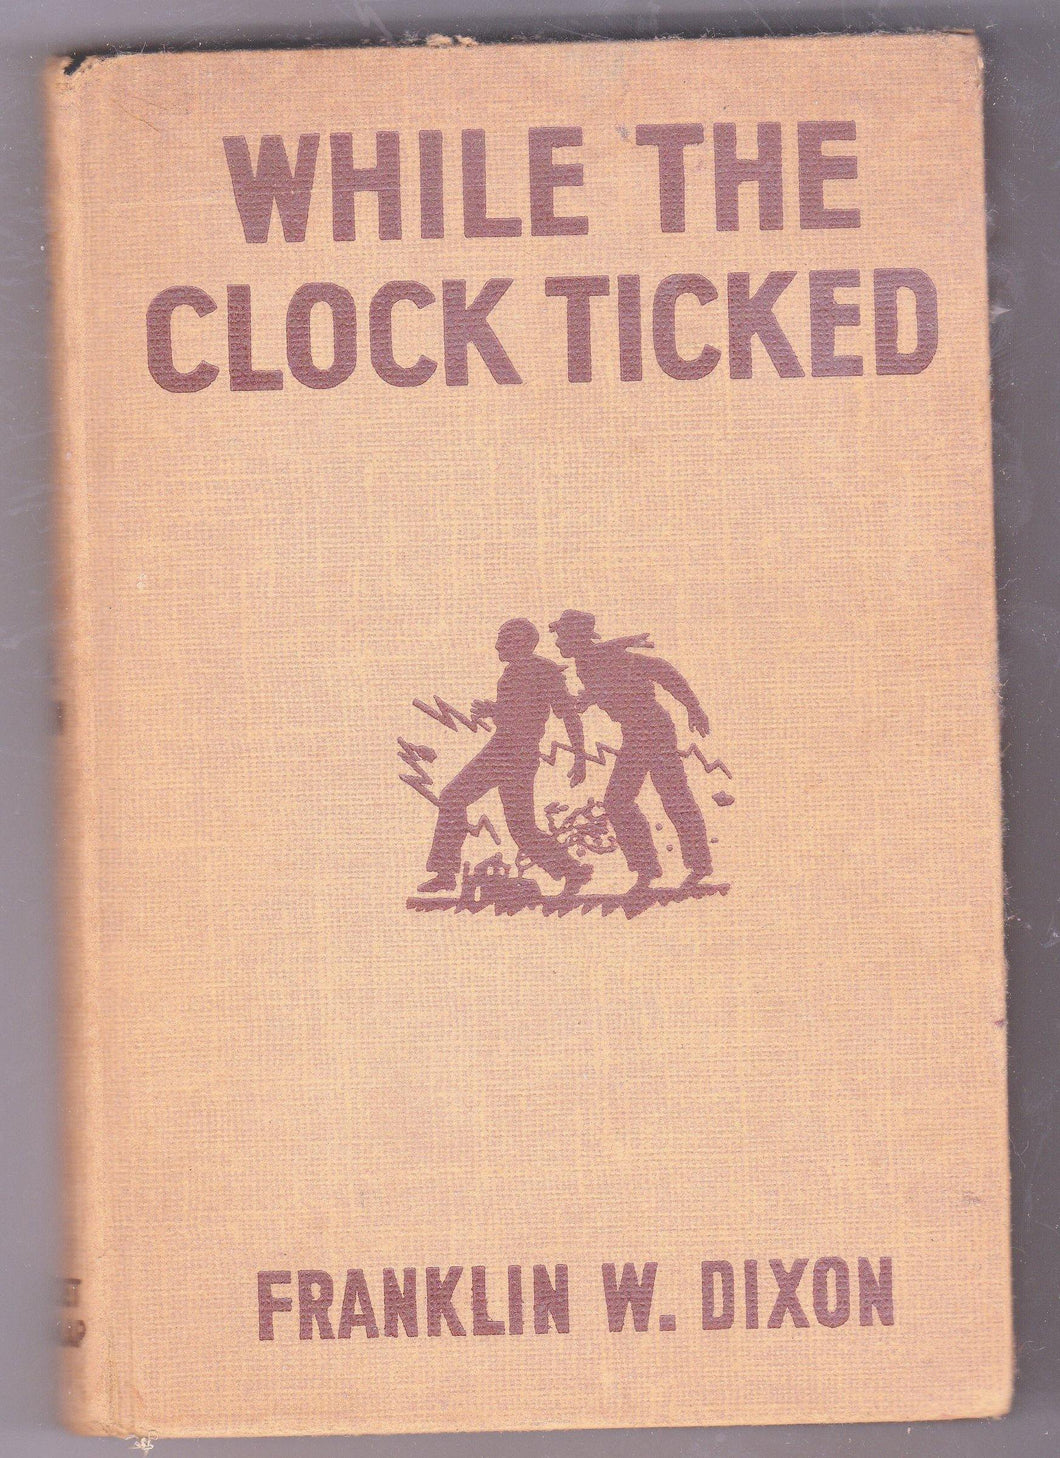 The Hardy Boys Mystery Stories While The Clock Ticked Franklin W Dixon 1932 Hardcover - TulipStuff